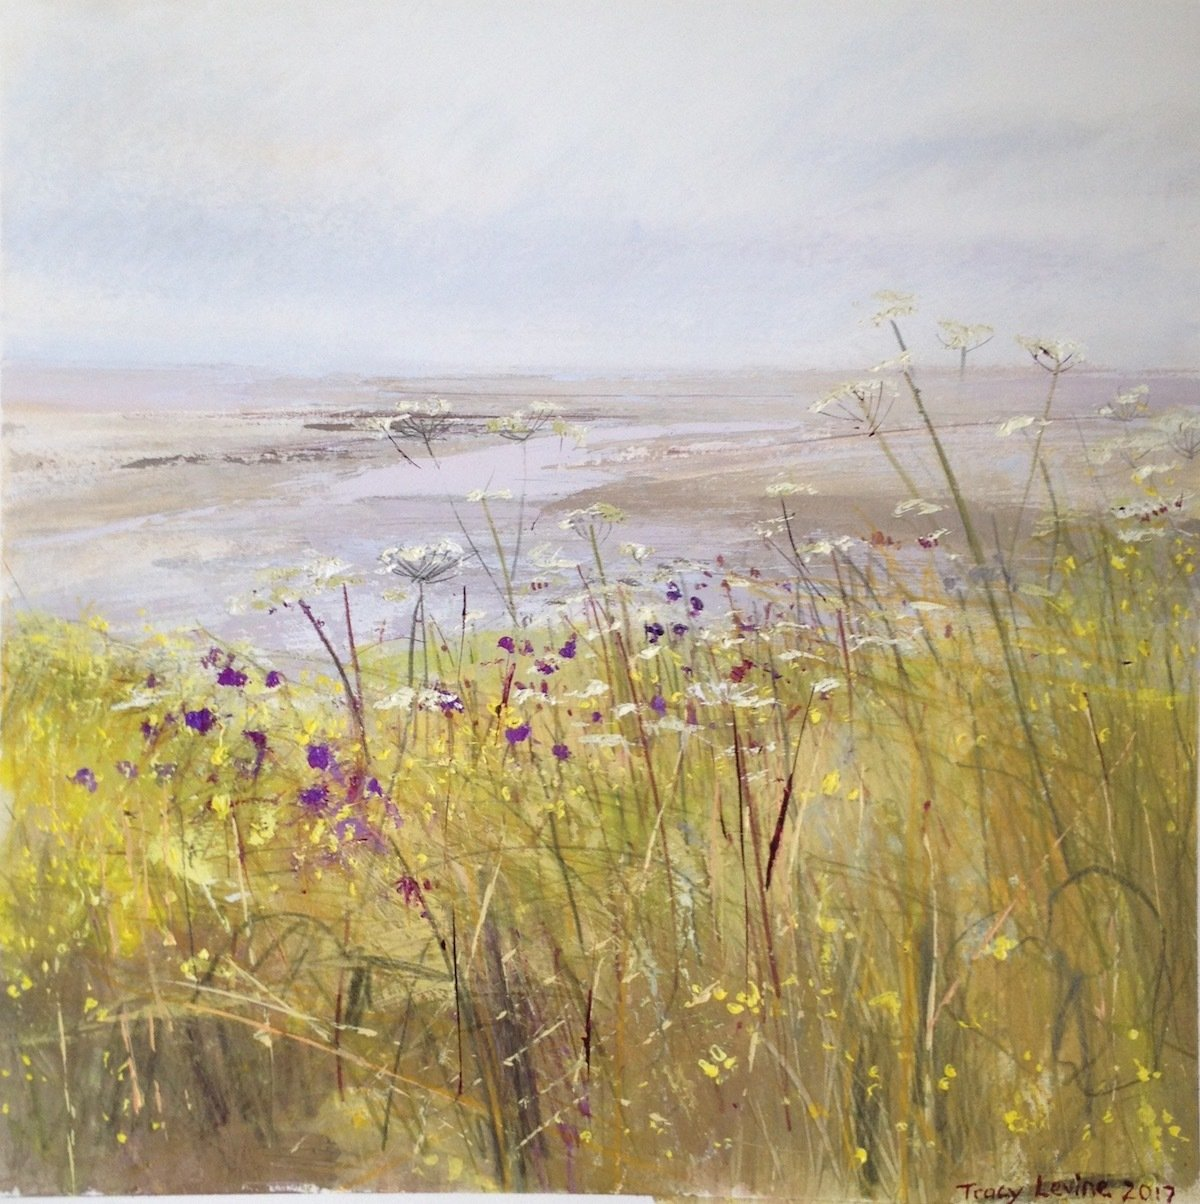 Cove, with Yellow Weeds